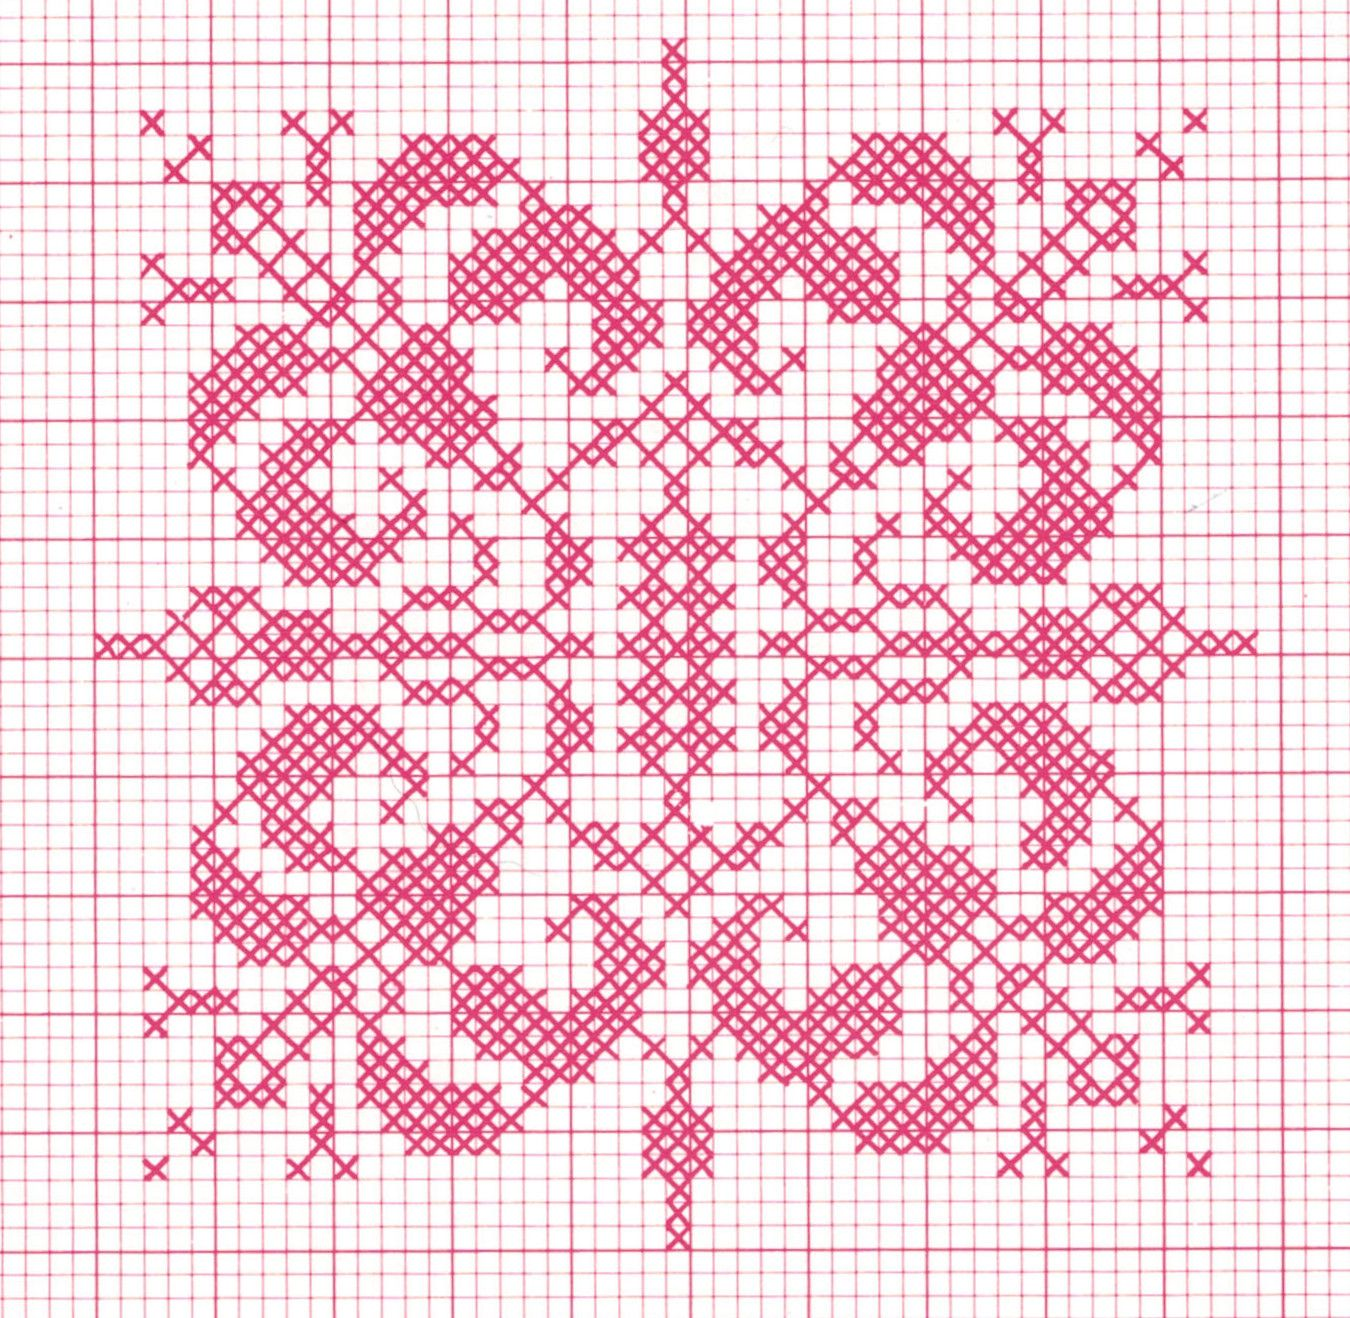 Biscornu biscornus pinterest cross stitch stitch and embroidery